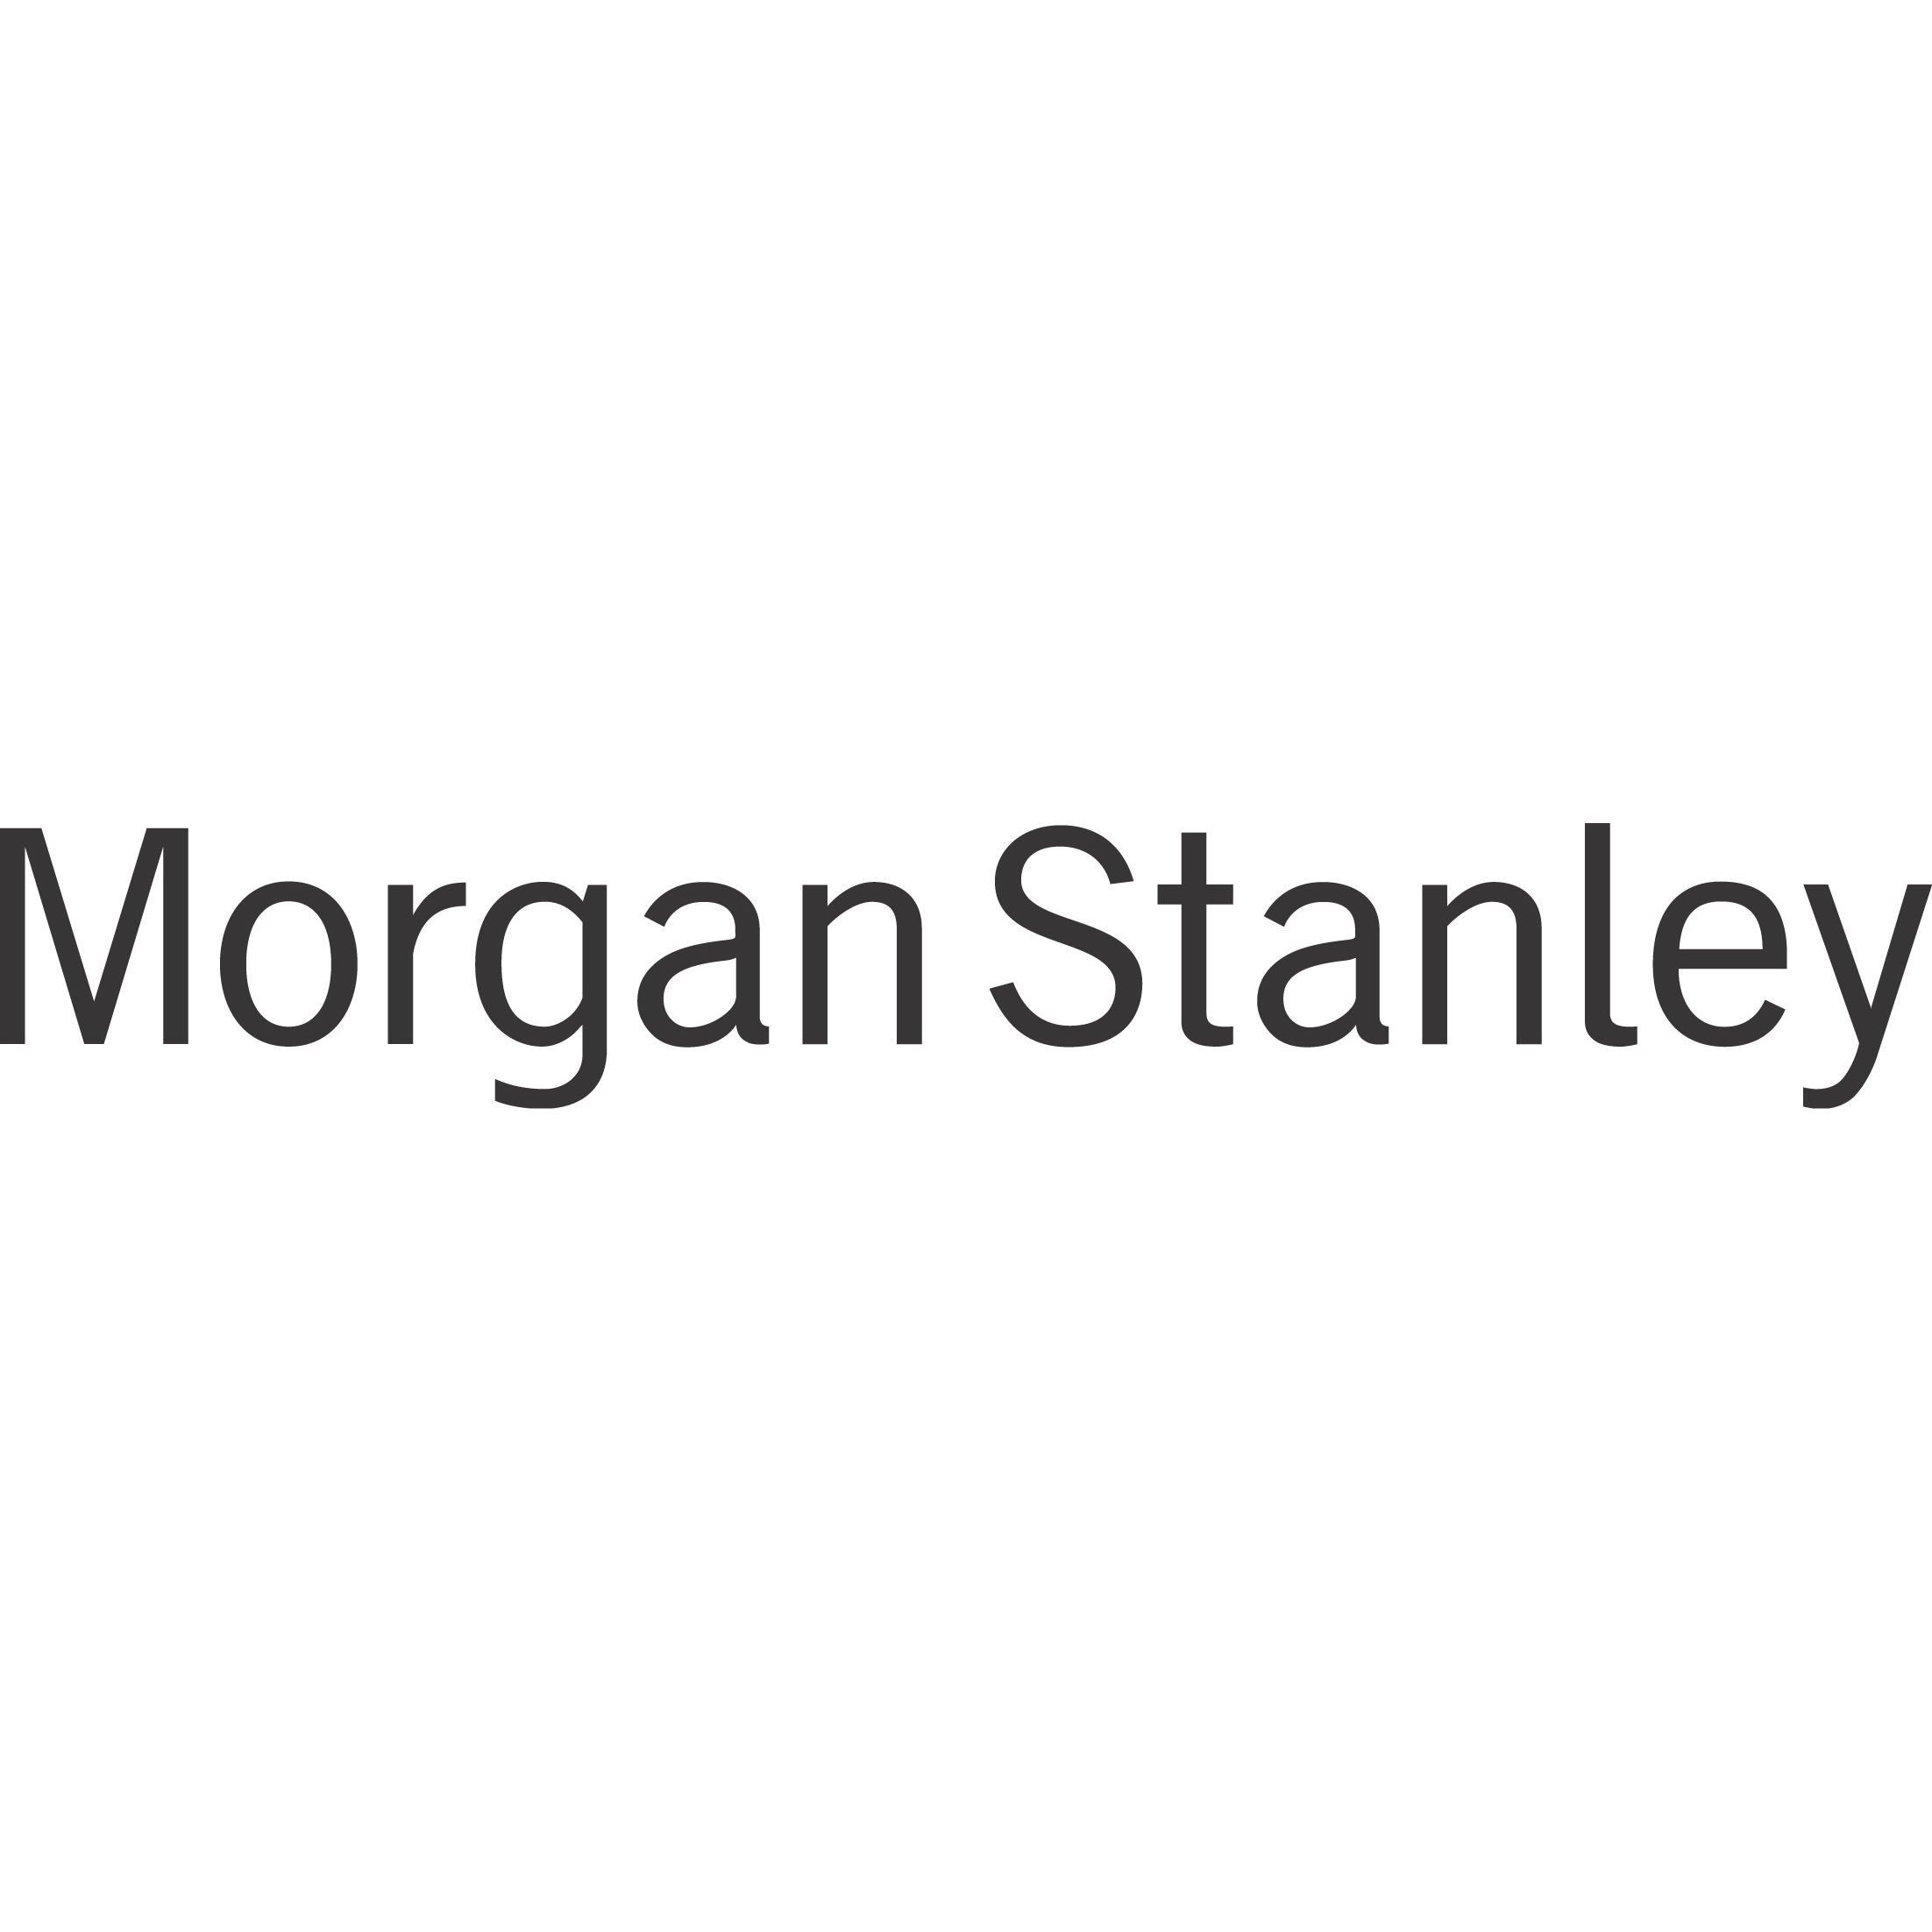 Andrea Smith - Morgan Stanley | Financial Advisor in Houston,Texas